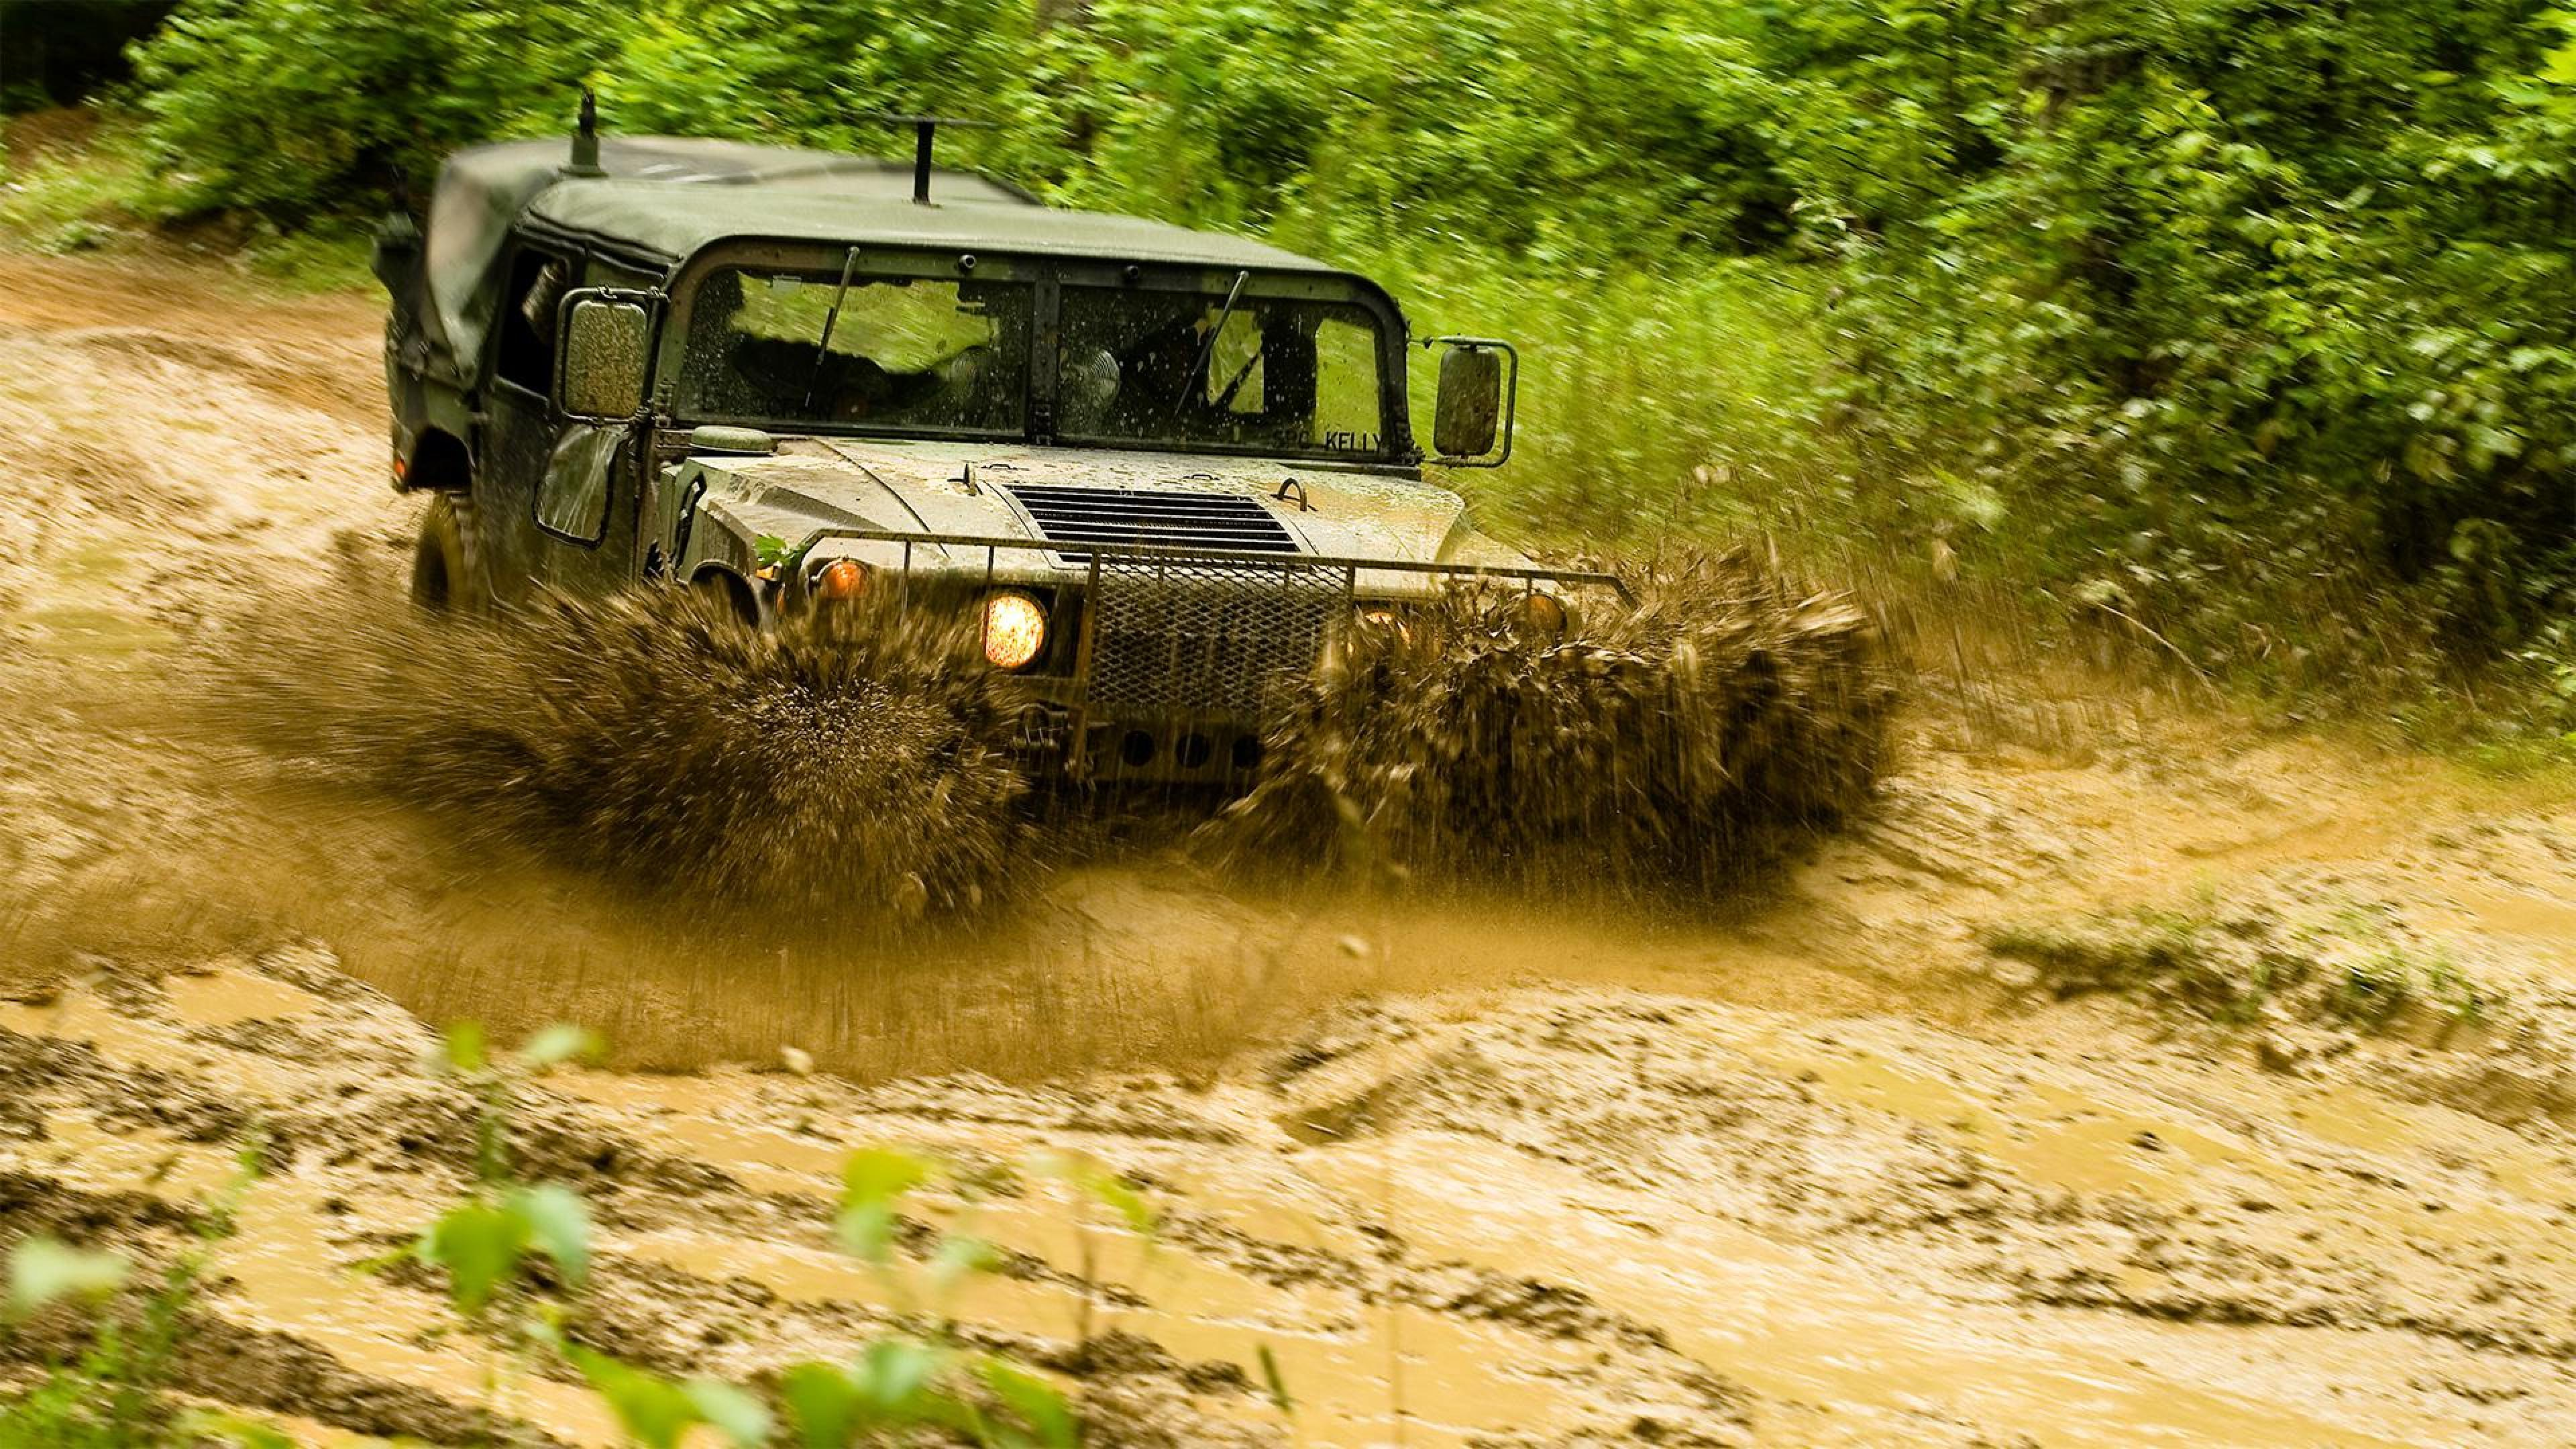 Download Wallpapers and Pictures Hummer mud splashes 3840x2160